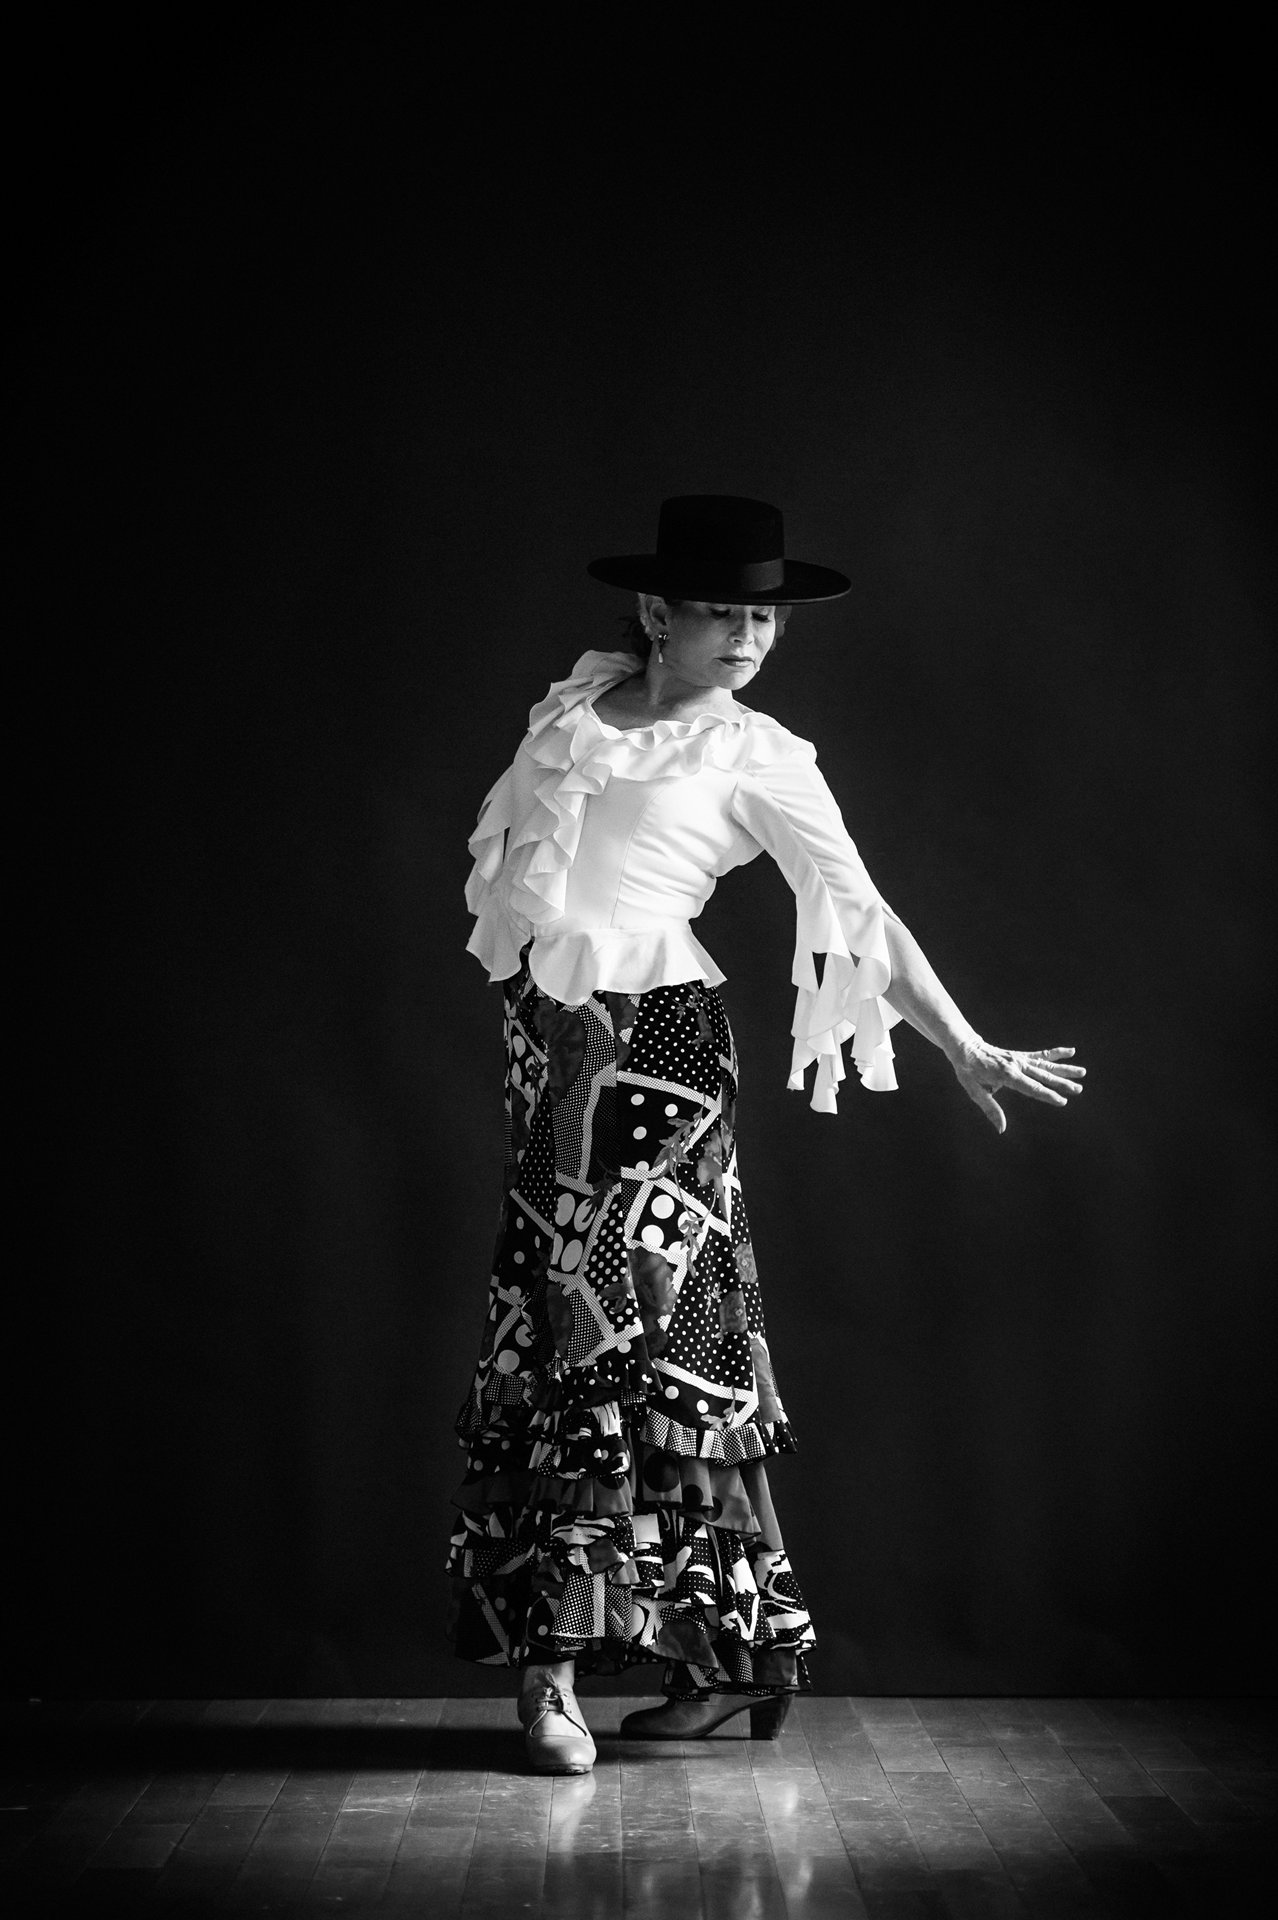 Tommy Xing Los Angeles Orange County Dance Photography 14.jpg